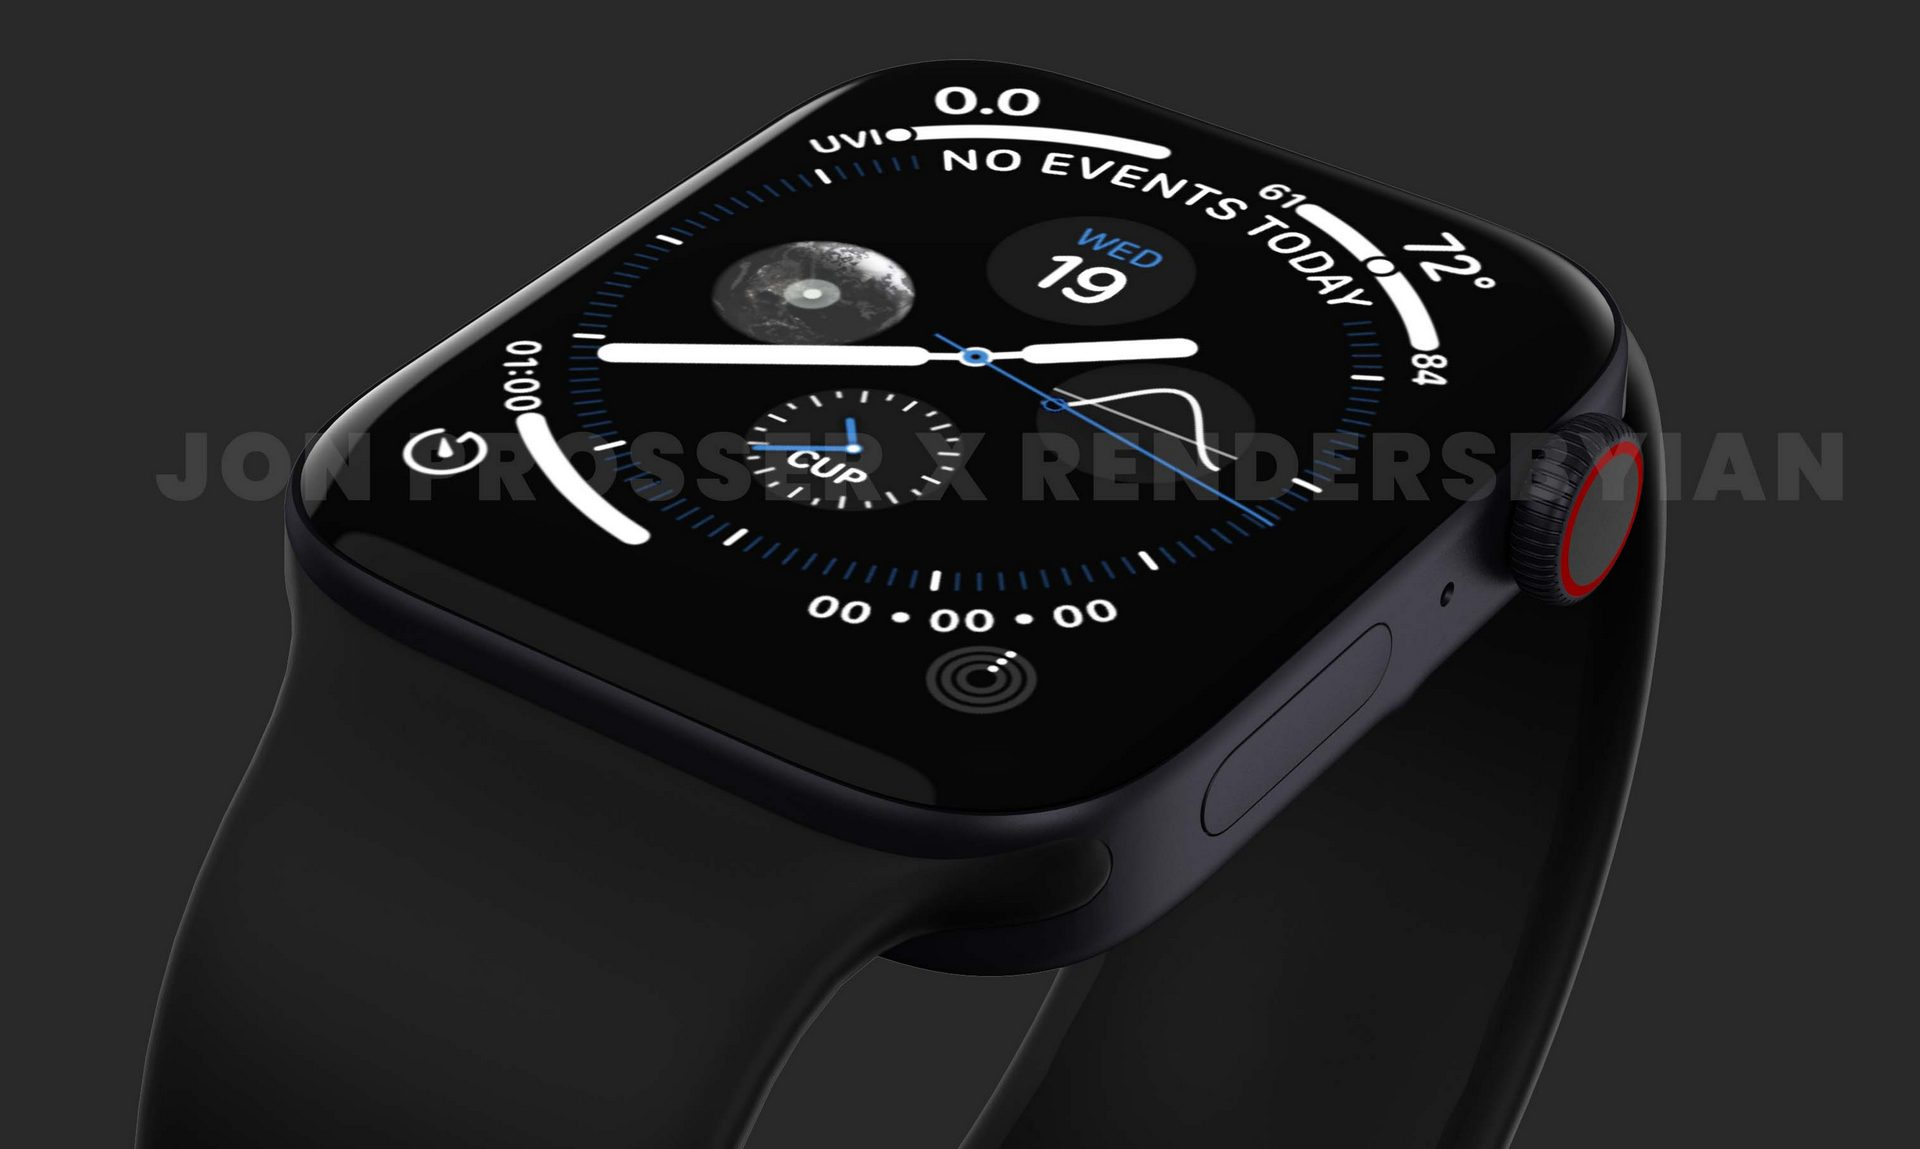 The latest Apple Watch Series 7 leak reveals new watch faces and more